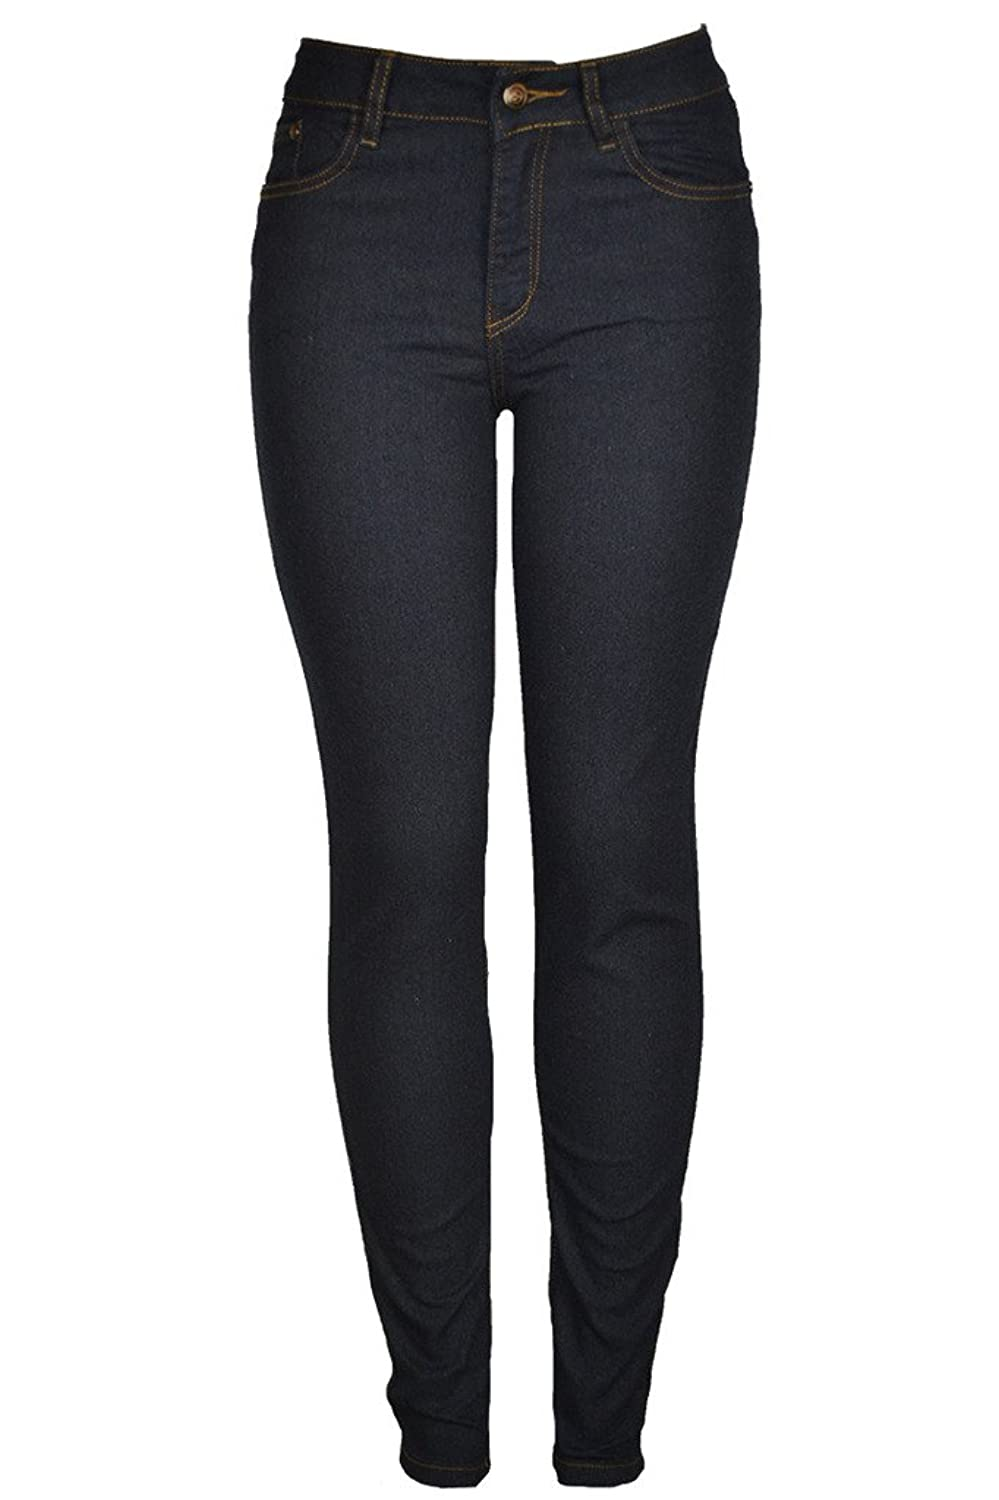 143Fashion Junior's Stretchy Five Pocket Mid-Rise Skinny Jeans